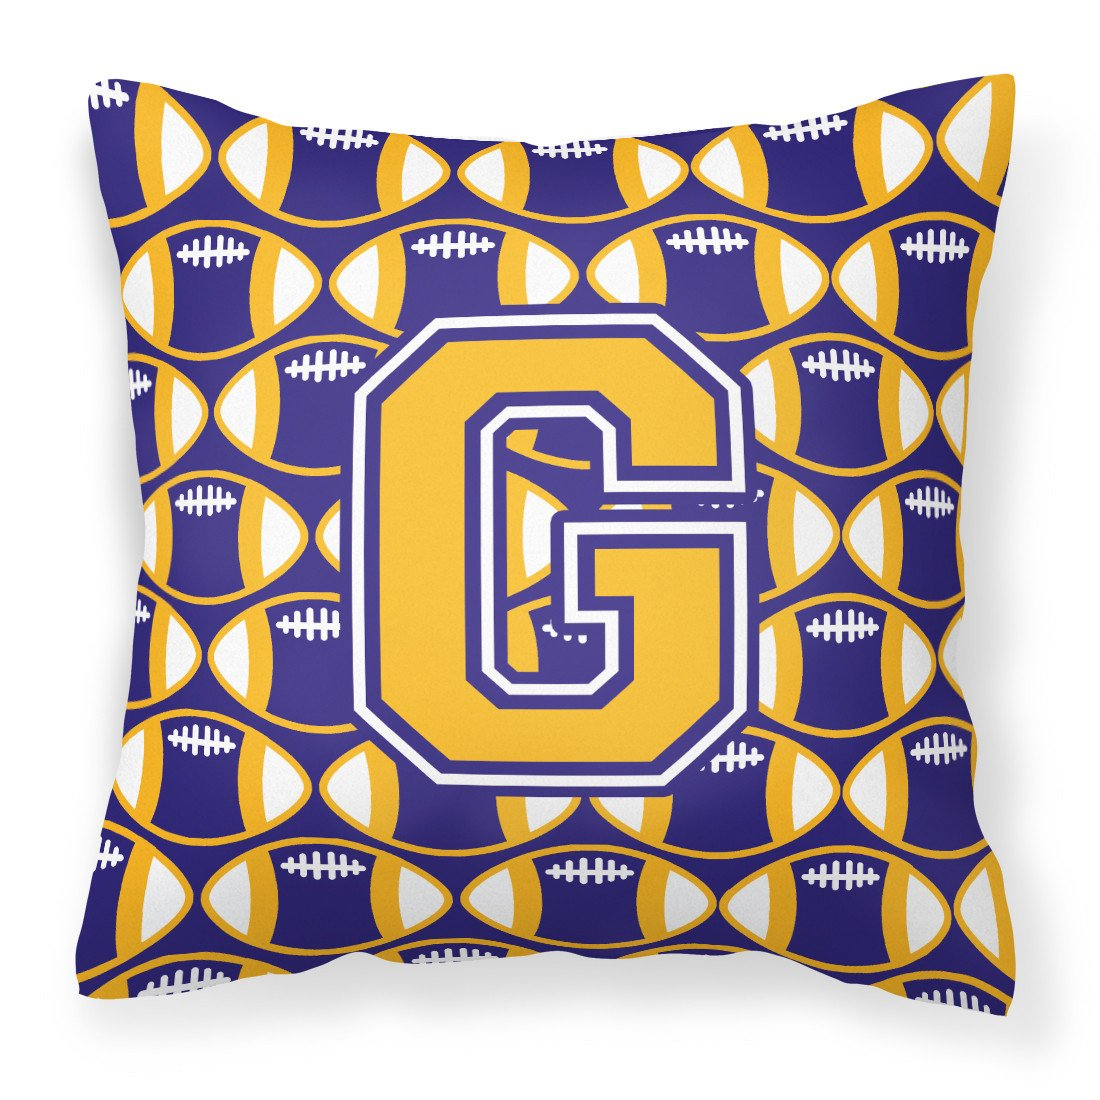 Letter G Football Purple and Gold Fabric Decorative Pillow CJ1064-GPW1414 by Caroline's Treasures